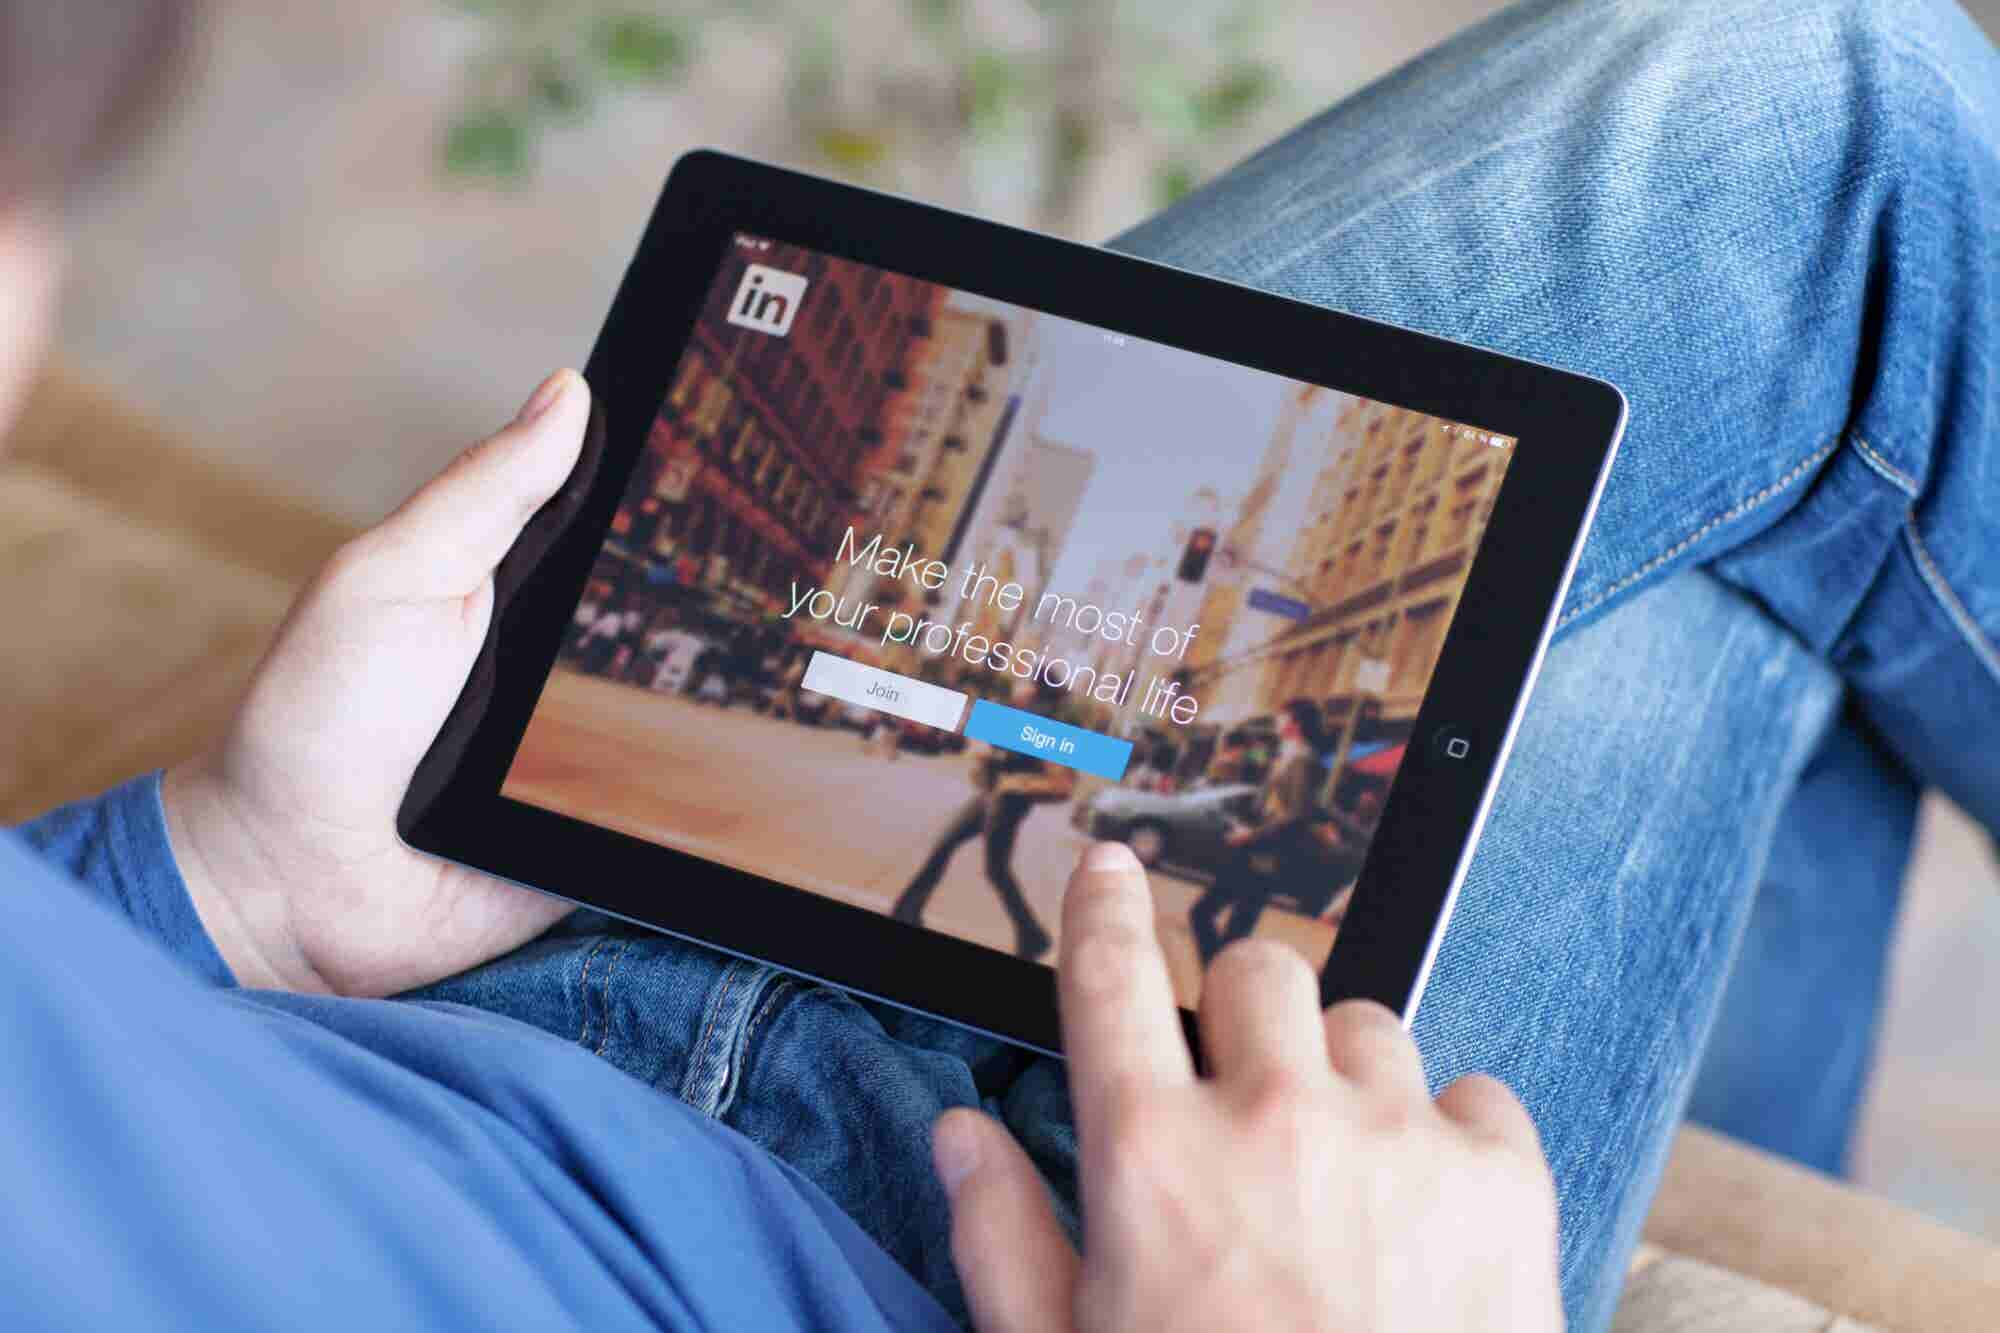 4 Reasons LinkedIn Has Become Indispensable to Business Leaders